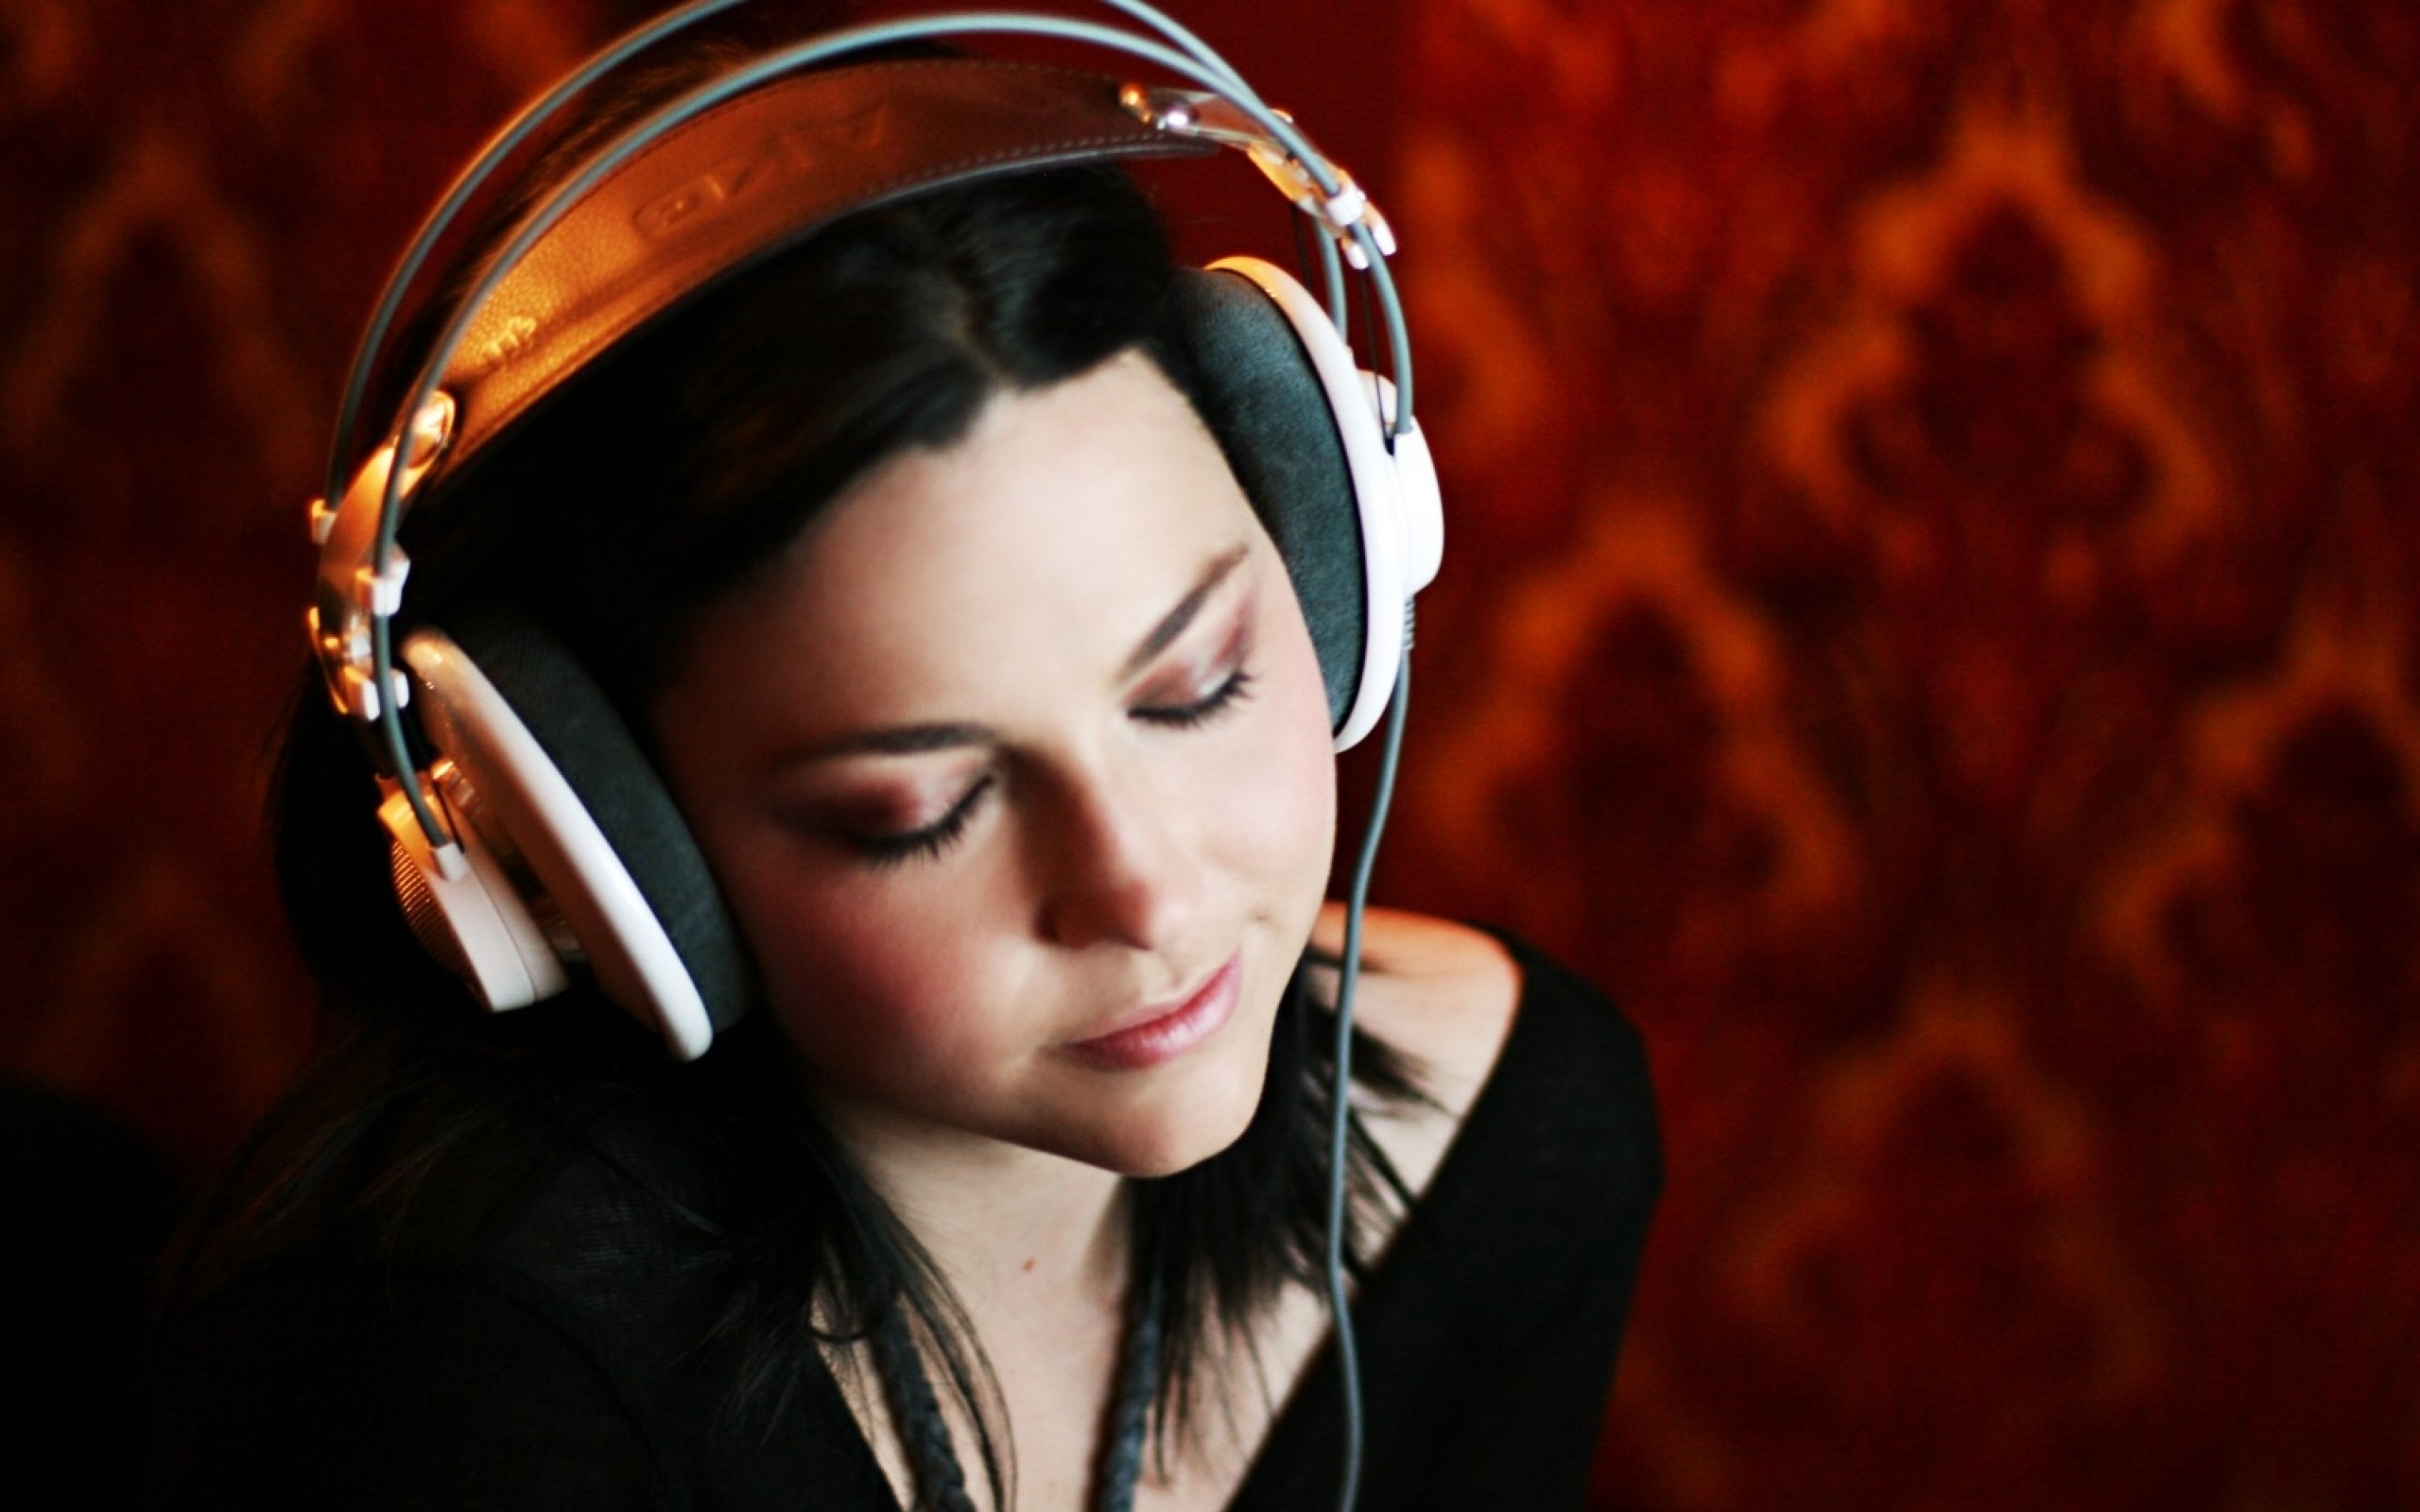 2560x1600 amy lee evanescence headphones girl 1599x1066 wallpaper Art HD Wallpaper